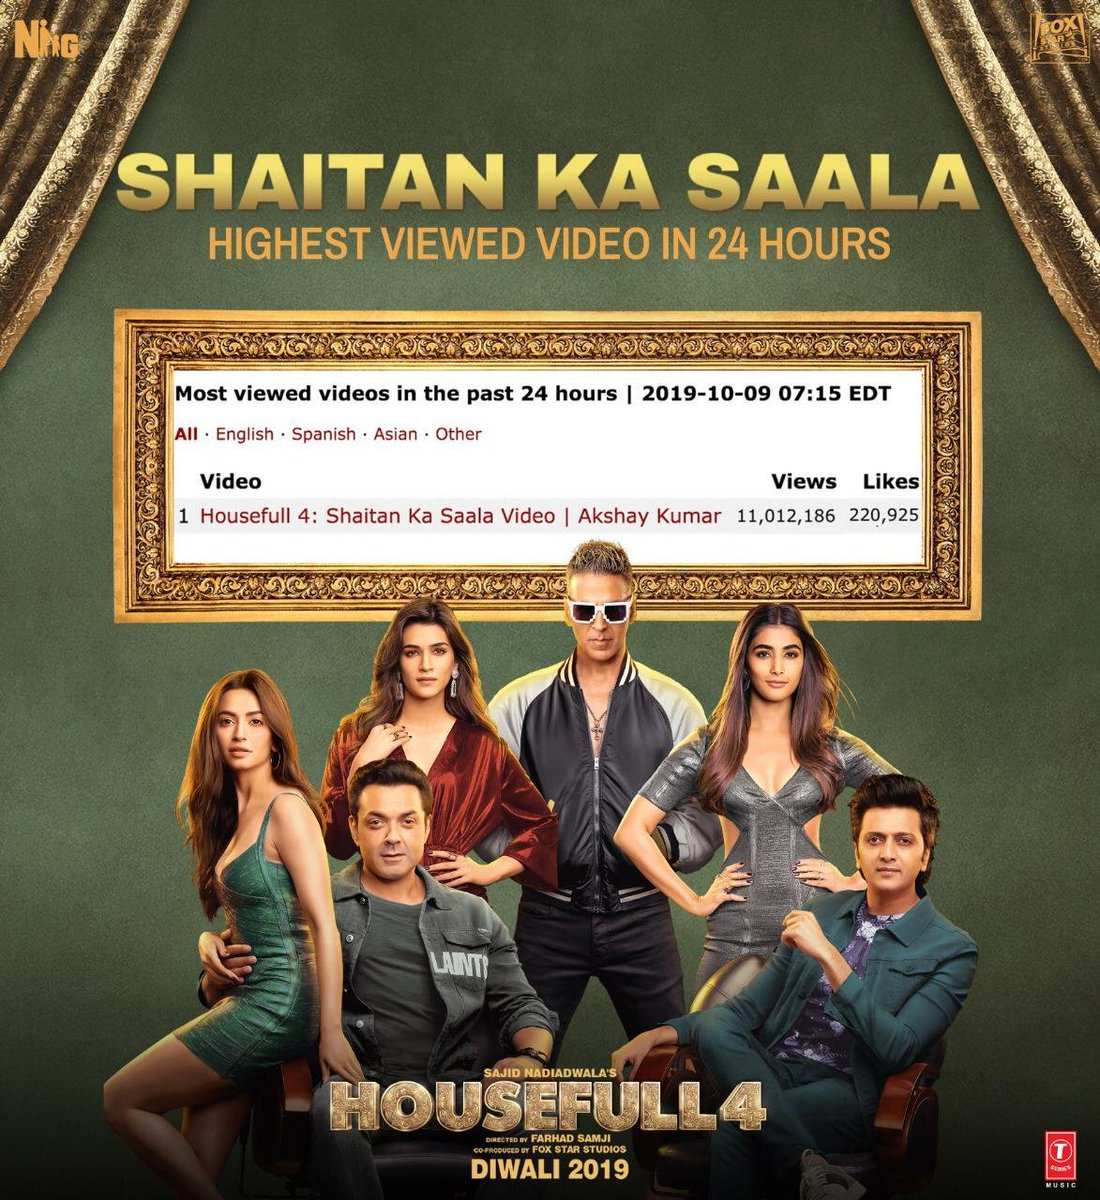 Bala is taking over the world! #ShaitanKaSaala becomes the most viewed song on @YouTube in the last 24 hours! Woot! Join the celebration and participate in #TheBalaChallenge now! #Housefull4 @akshaykumar